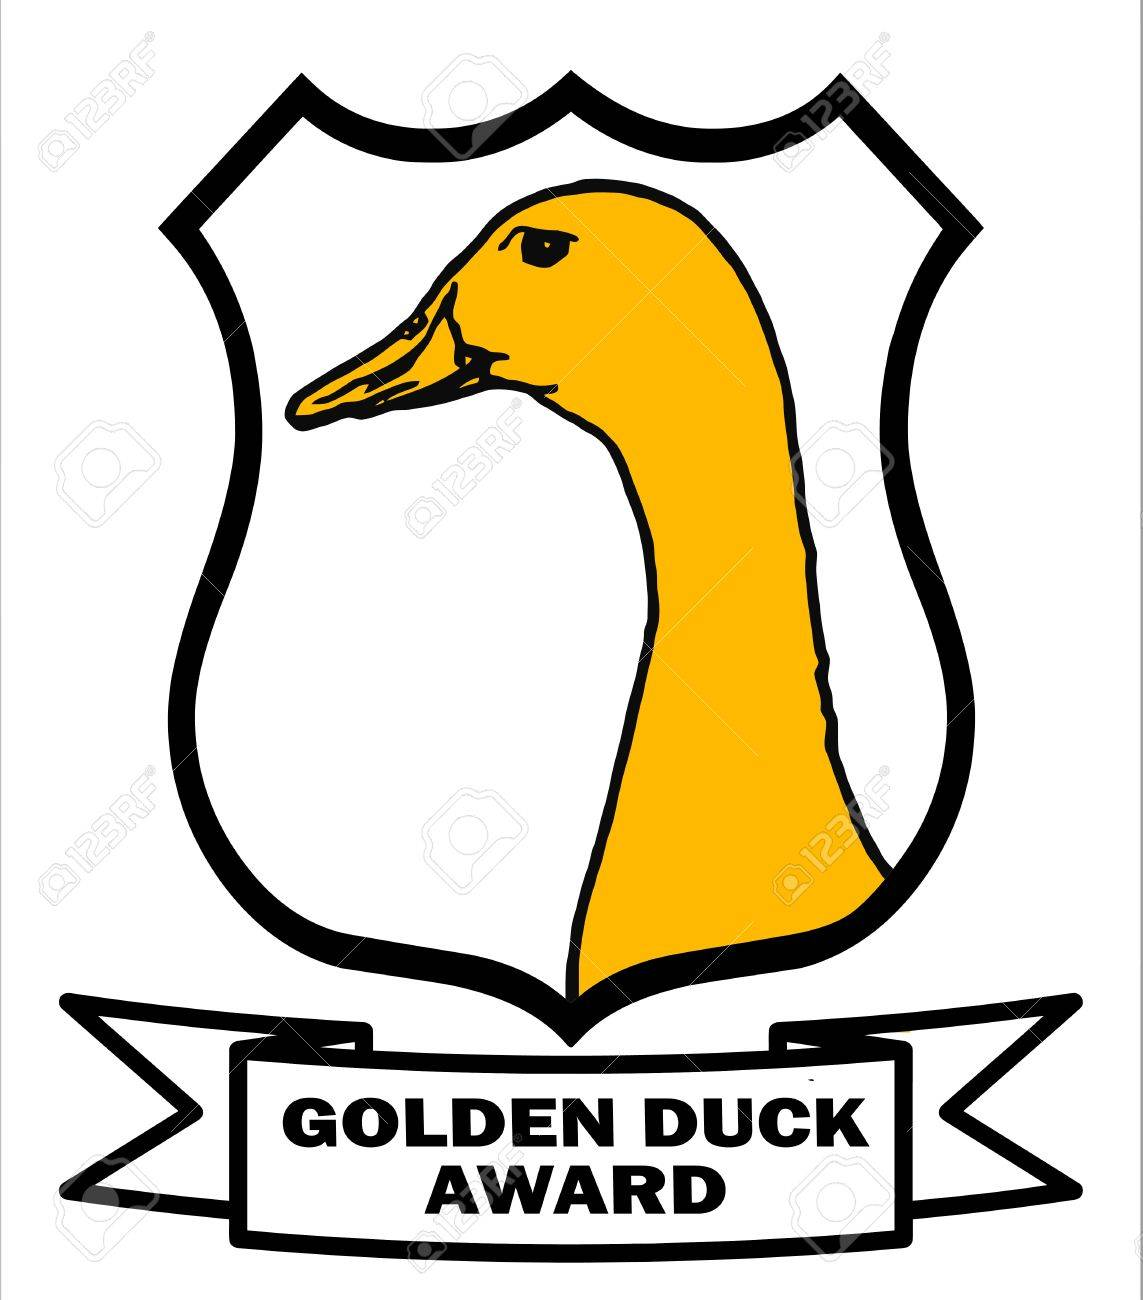 Cricket Golden Duck Award Shield with white background Stock Photo - 10457658